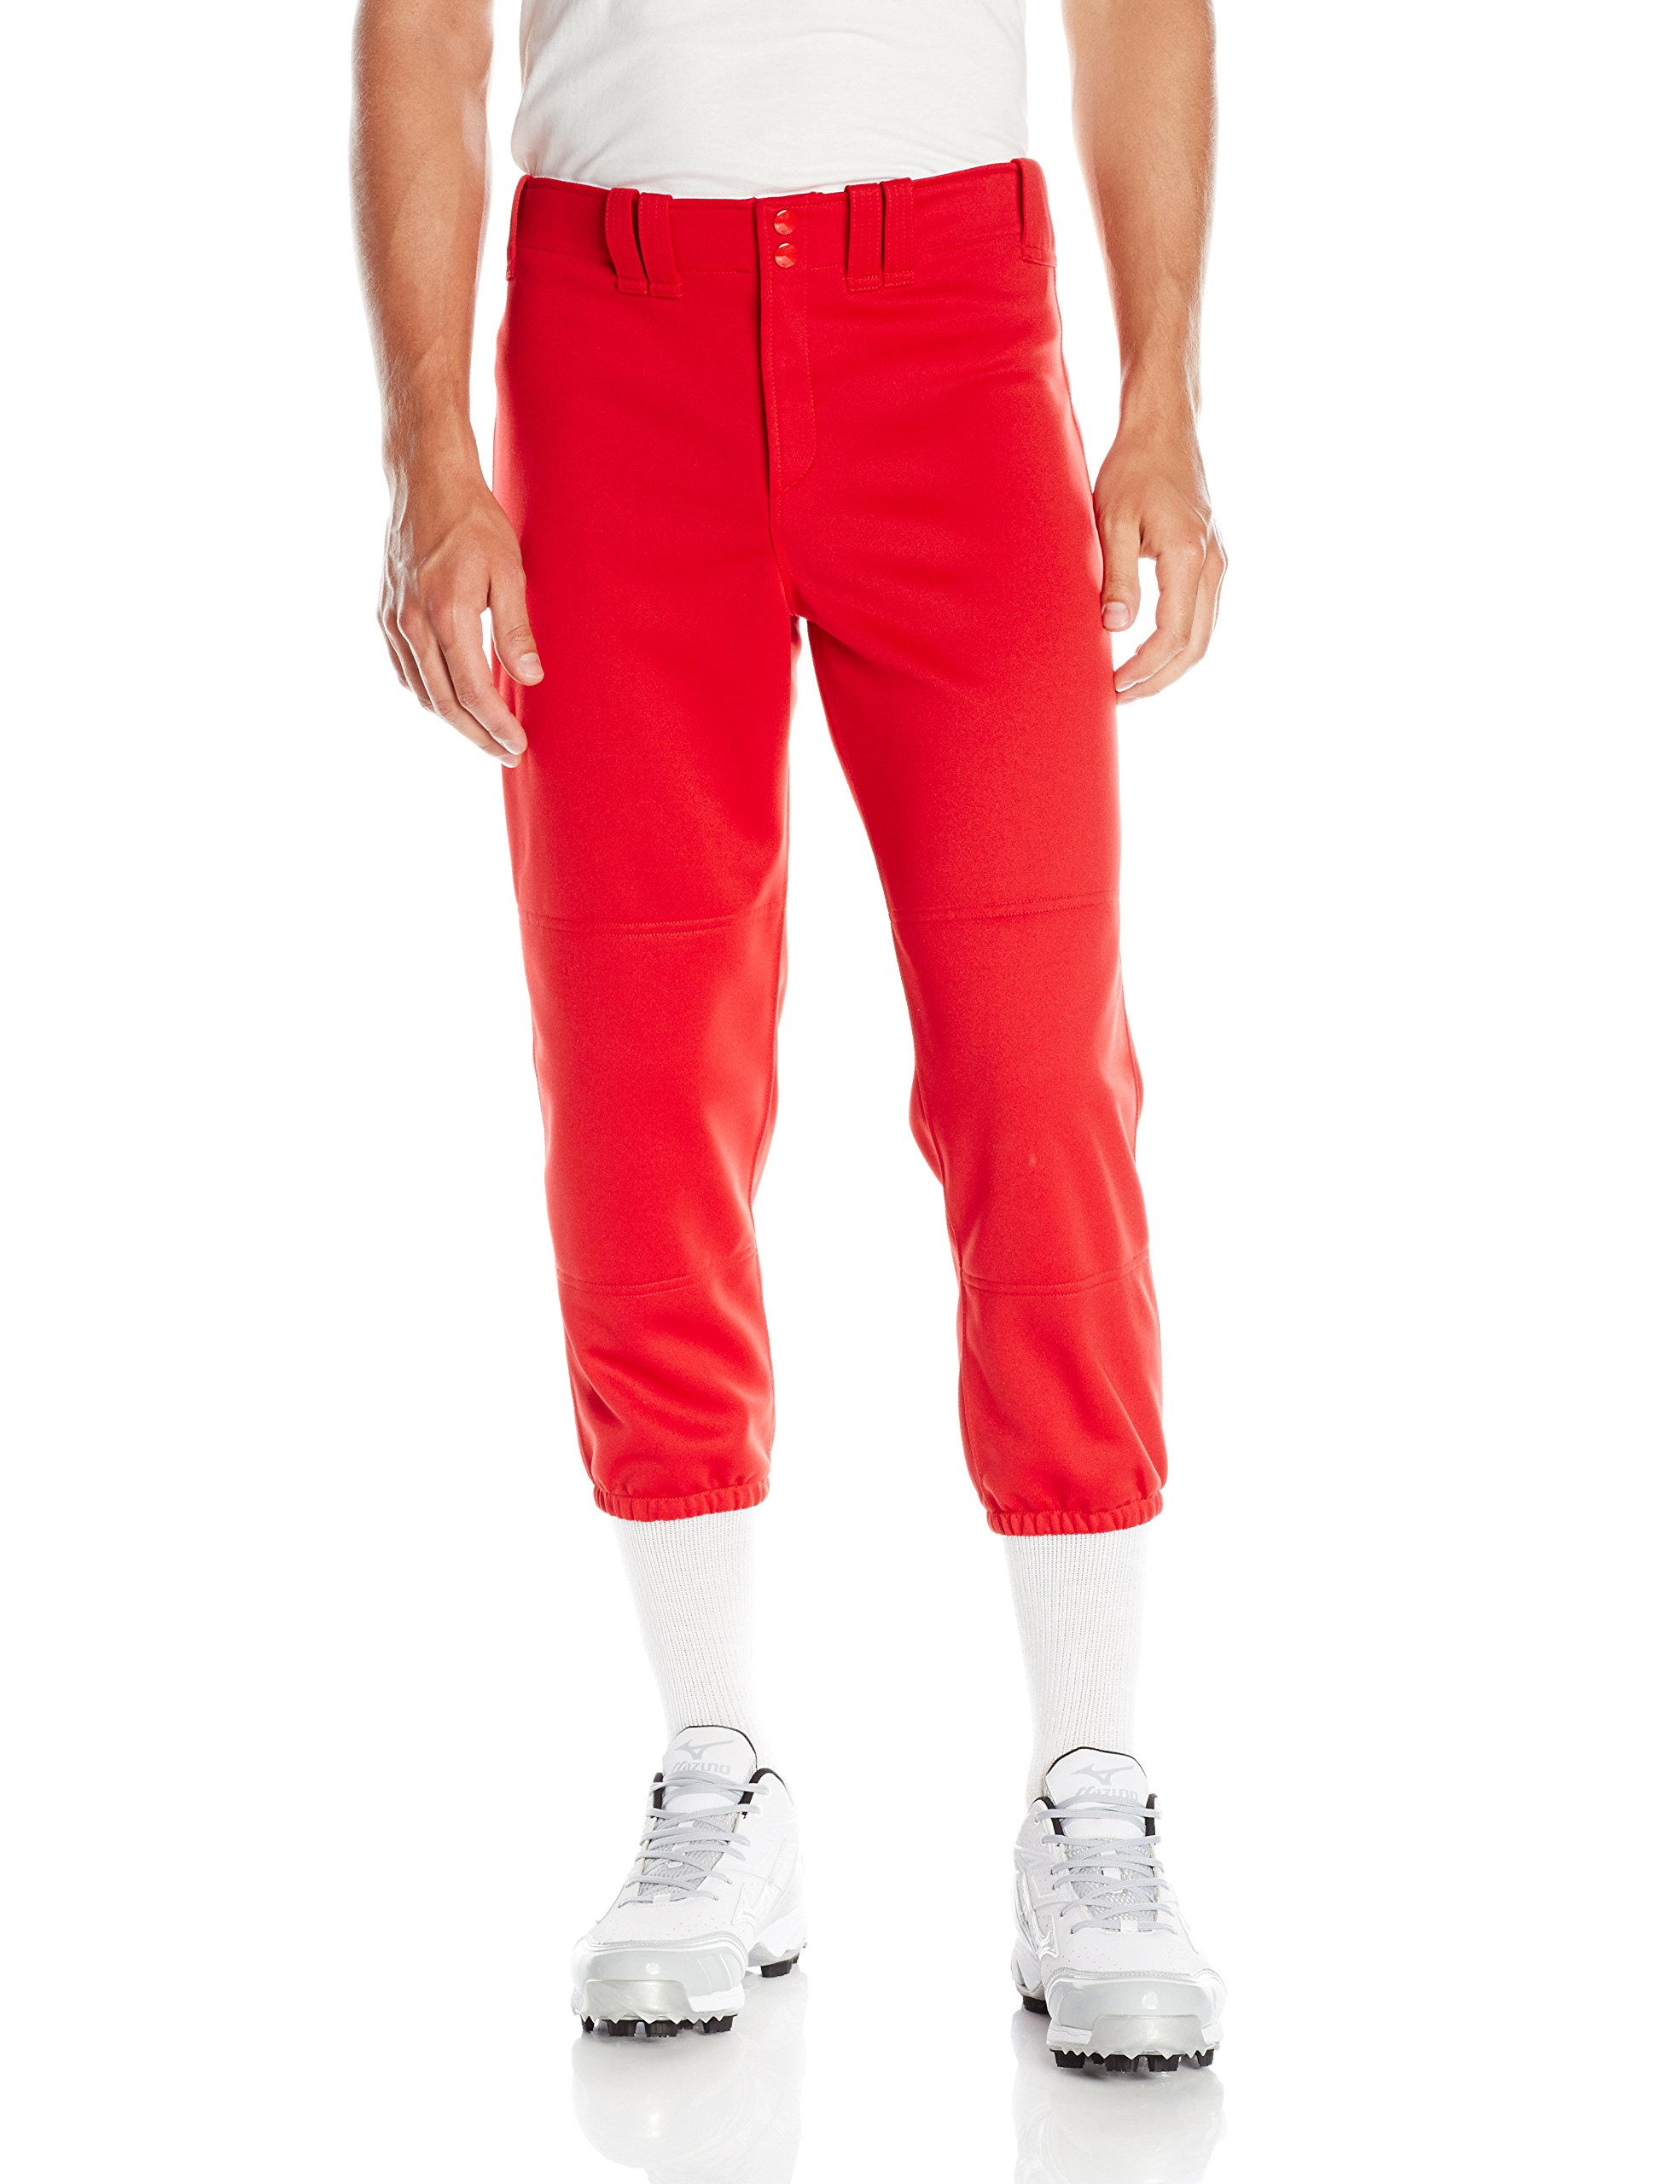 Mizuno Adult Women's Belted Low Rise Fastpitch Softball Pant, Red, X-Small by Mizuno (Image #2)